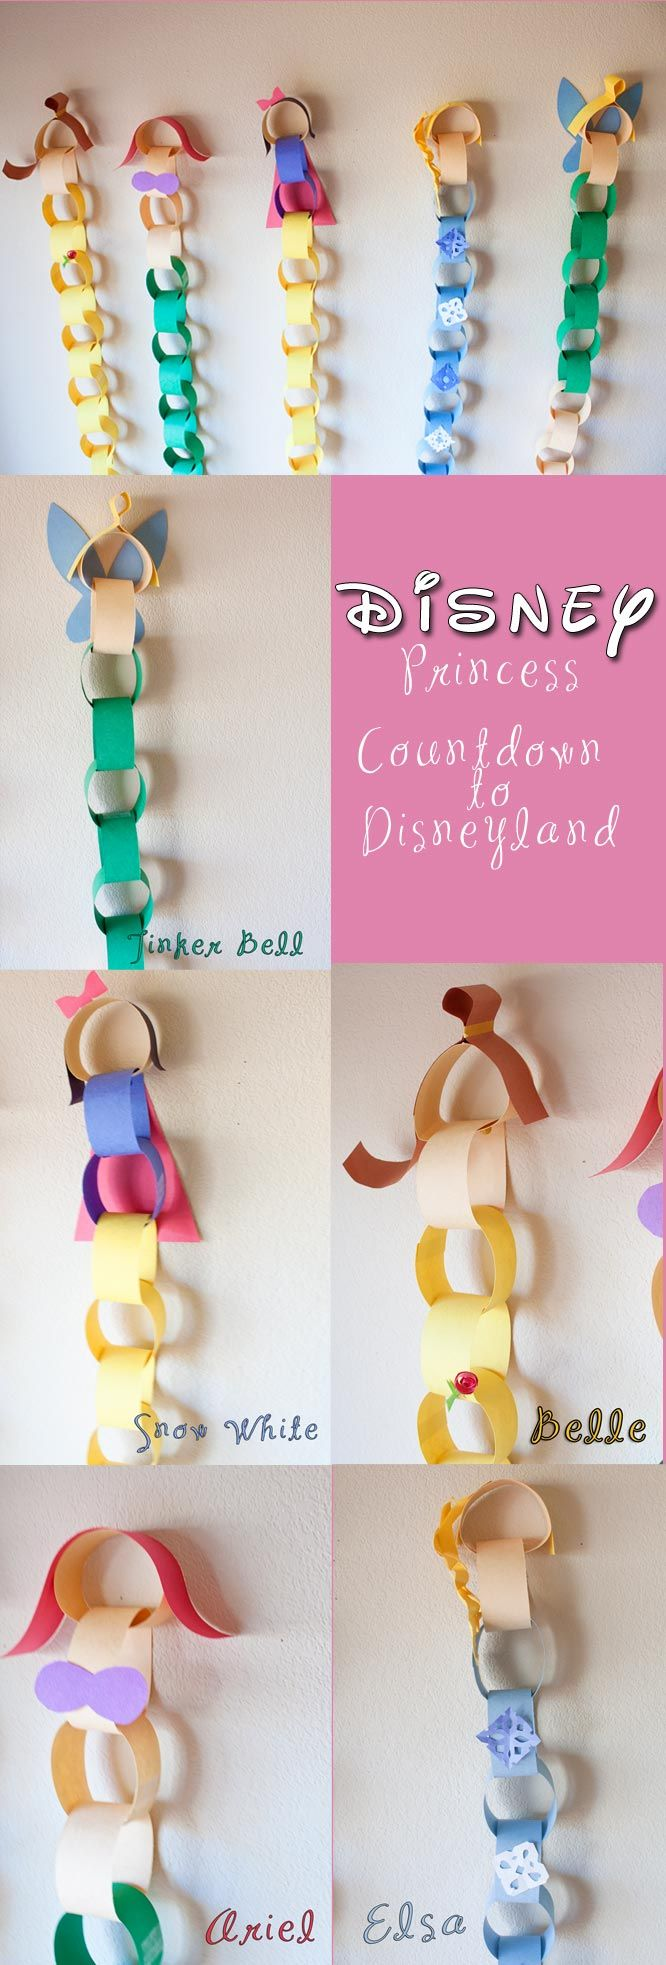 Disney Princess Disneyland Countdown - Making the World Cuter